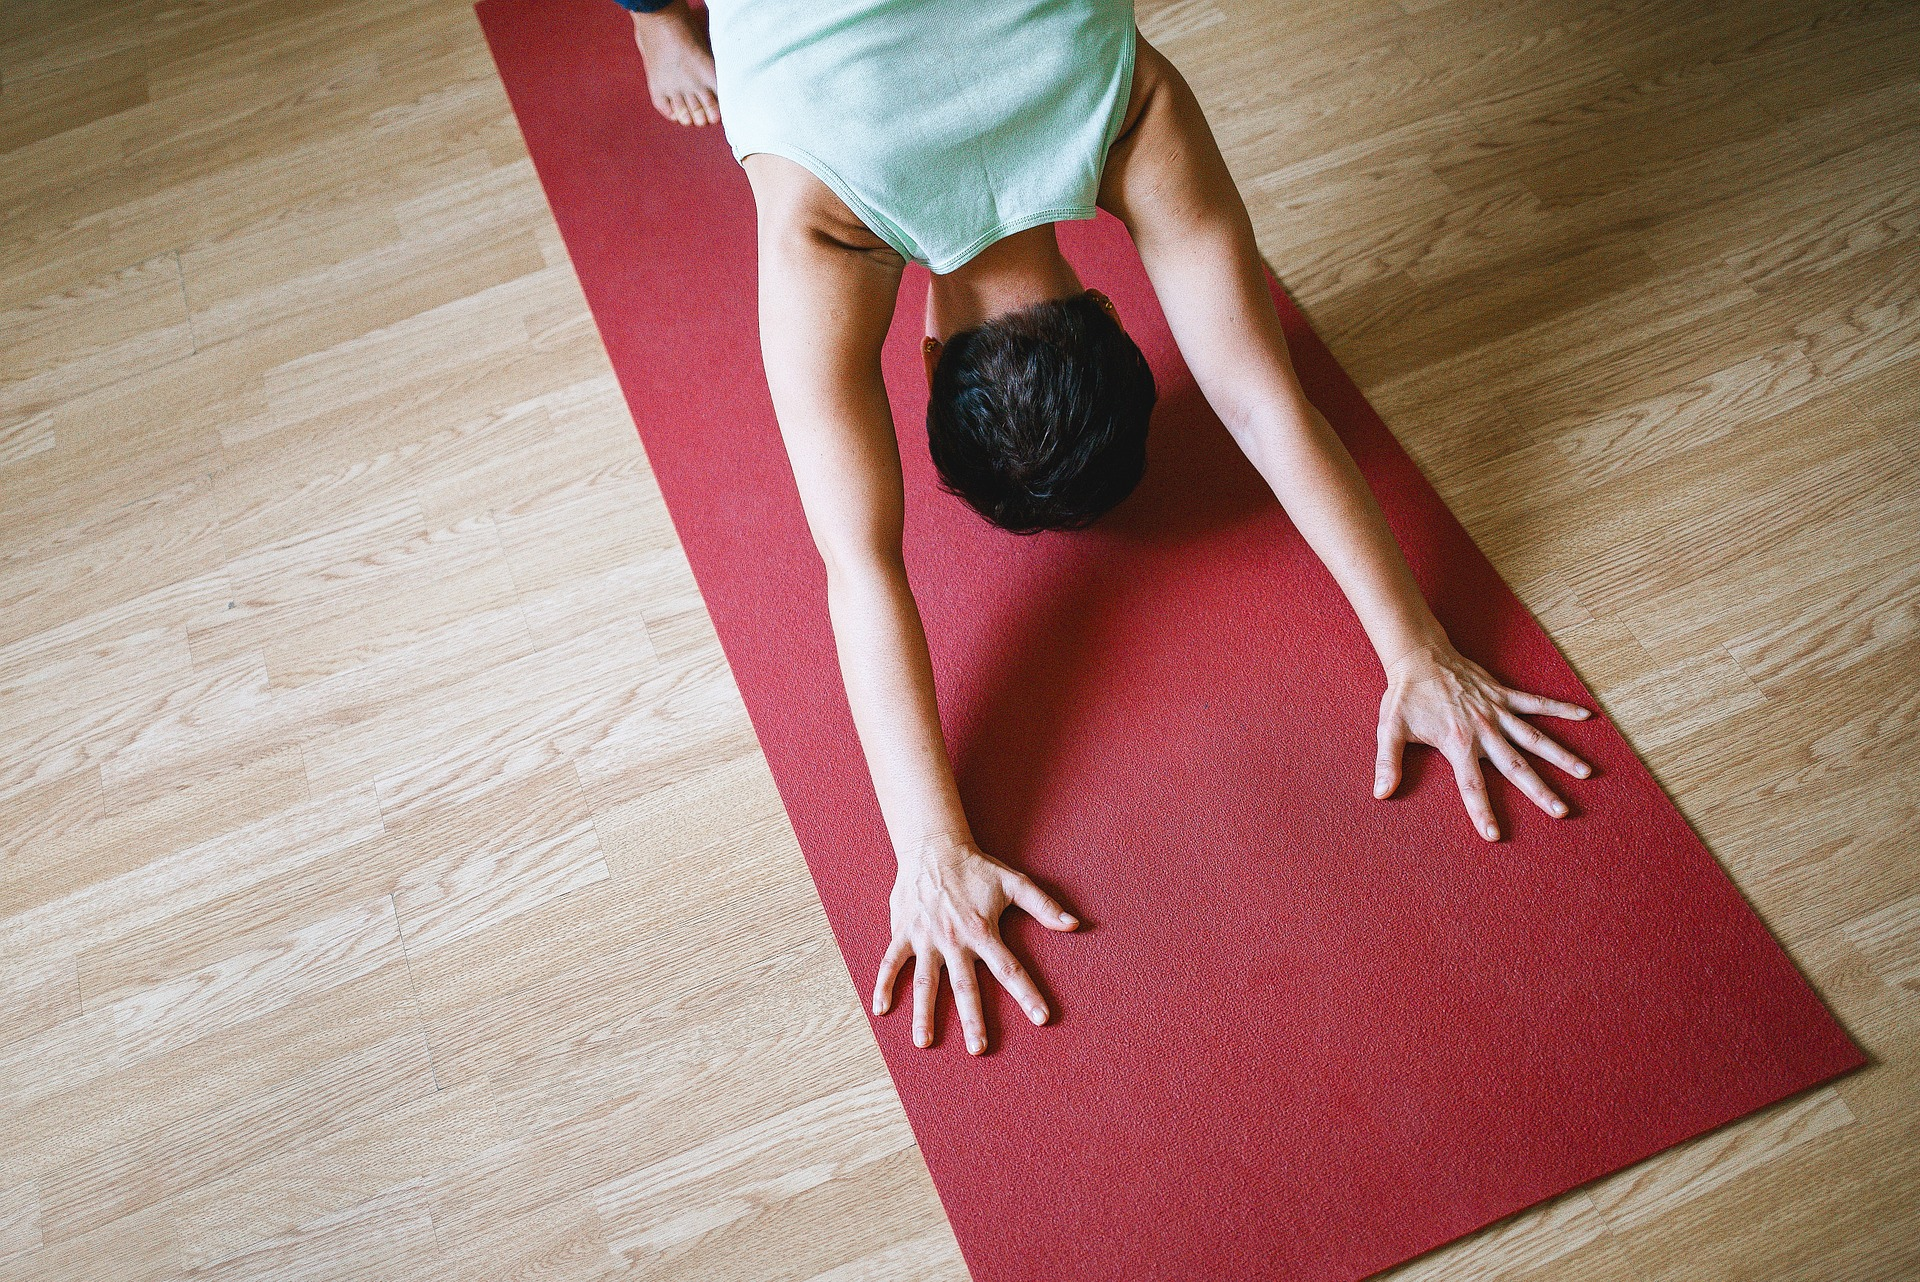 A person doing a downward dog yoga pose on a yoga mat.